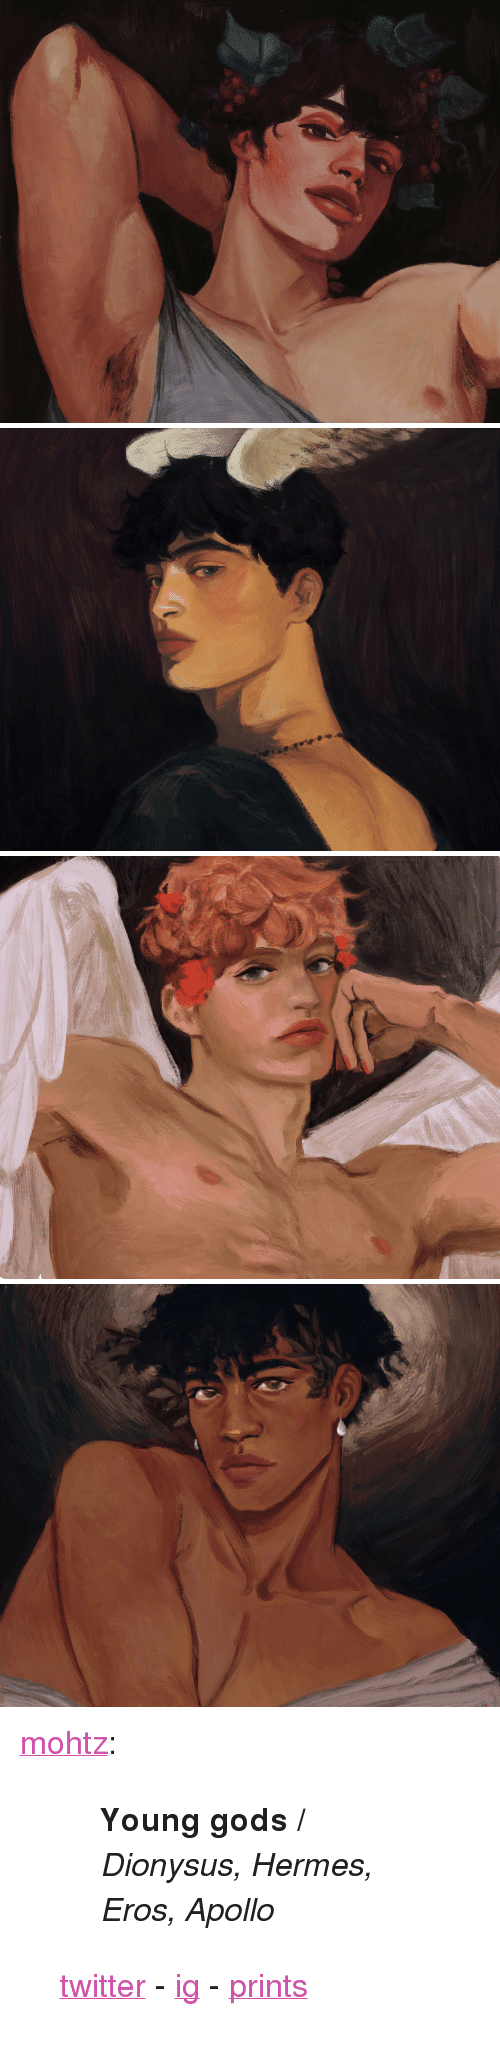 "Instagram, Tumblr, and Twitter: <p><a href=""http://mohtz.tumblr.com/post/174055797351/young-gods-dionysus-hermes-eros-apollo"" class=""tumblr_blog"">mohtz</a>:</p><blockquote> <blockquote><p><b>Young gods / </b><i>Dionysus, Hermes, Eros, Apollo</i></p></blockquote> <p><a href=""https://twitter.com/eaumohtz"">twitter</a> - <a href=""http://instagram.com/eaumohtz"">ig</a> - <a href=""https://society6.com/mohtz"">prints</a></p> </blockquote>"